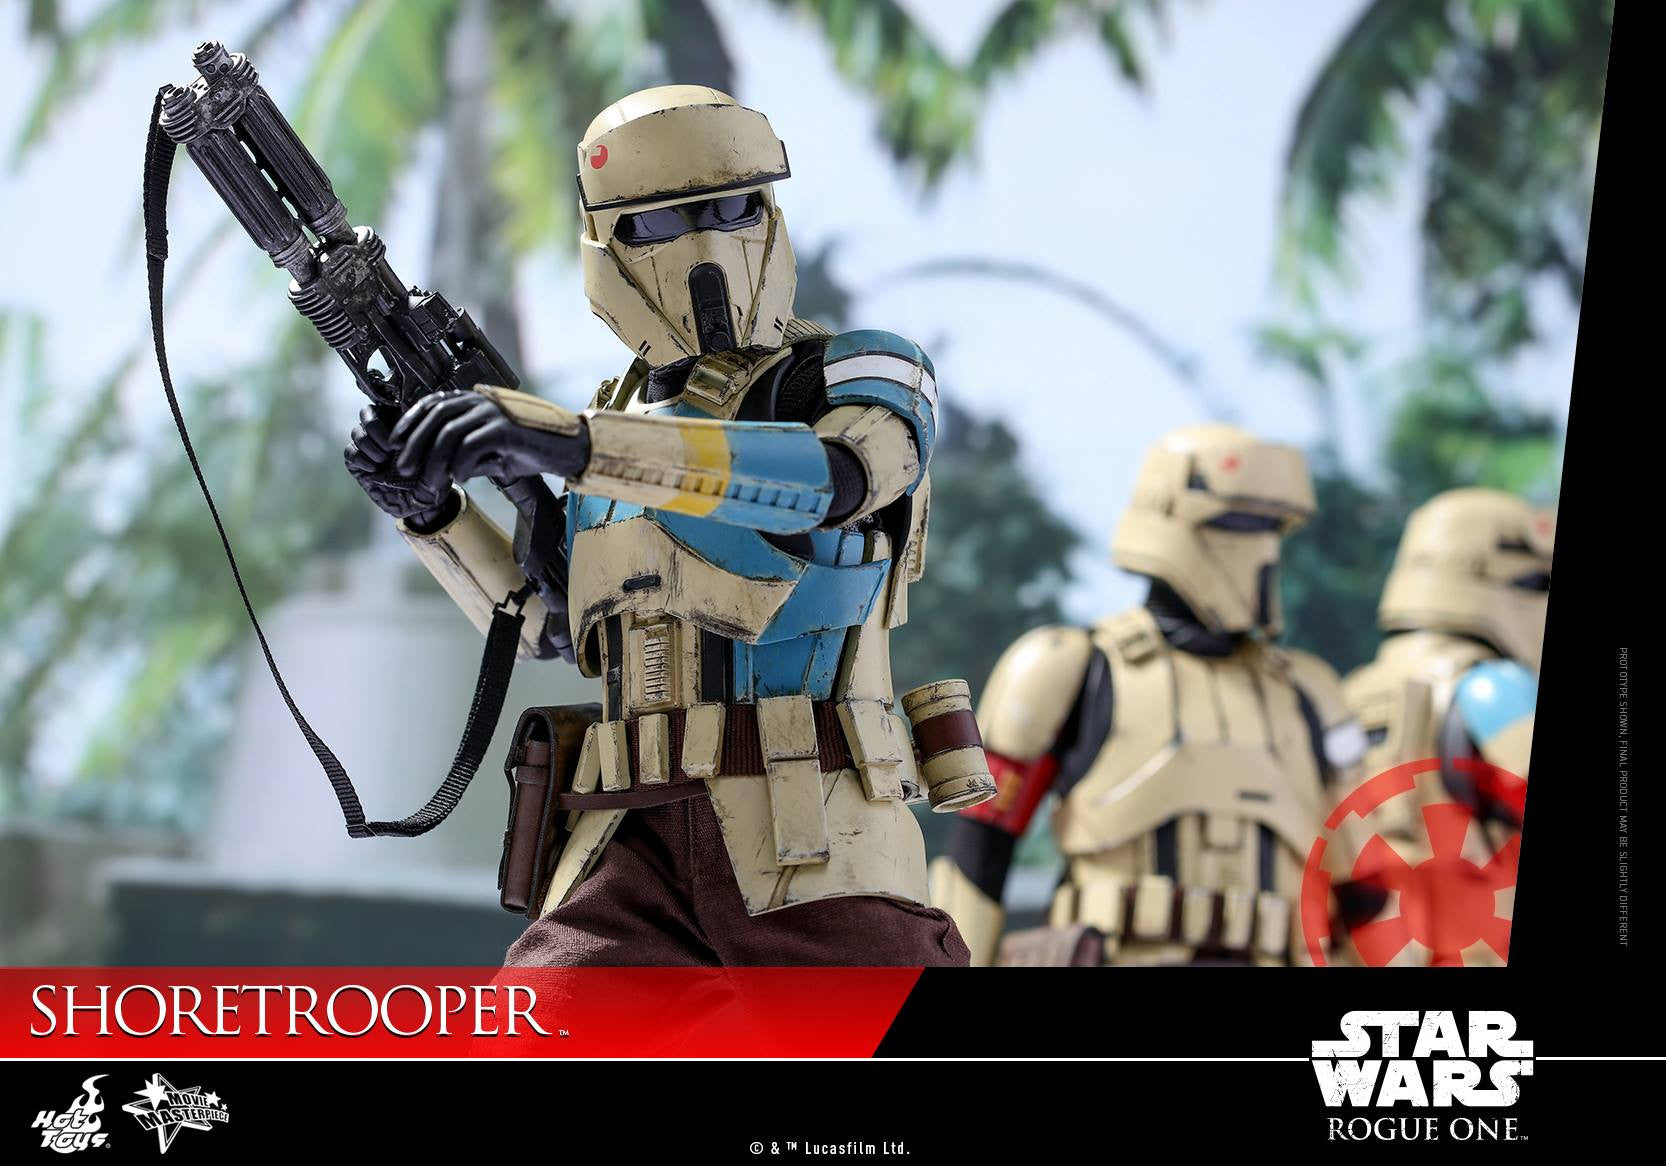 Hot Toys - MMS389 - Rogue One: A Star Wars Story - Shoretrooper - Marvelous Toys - 6